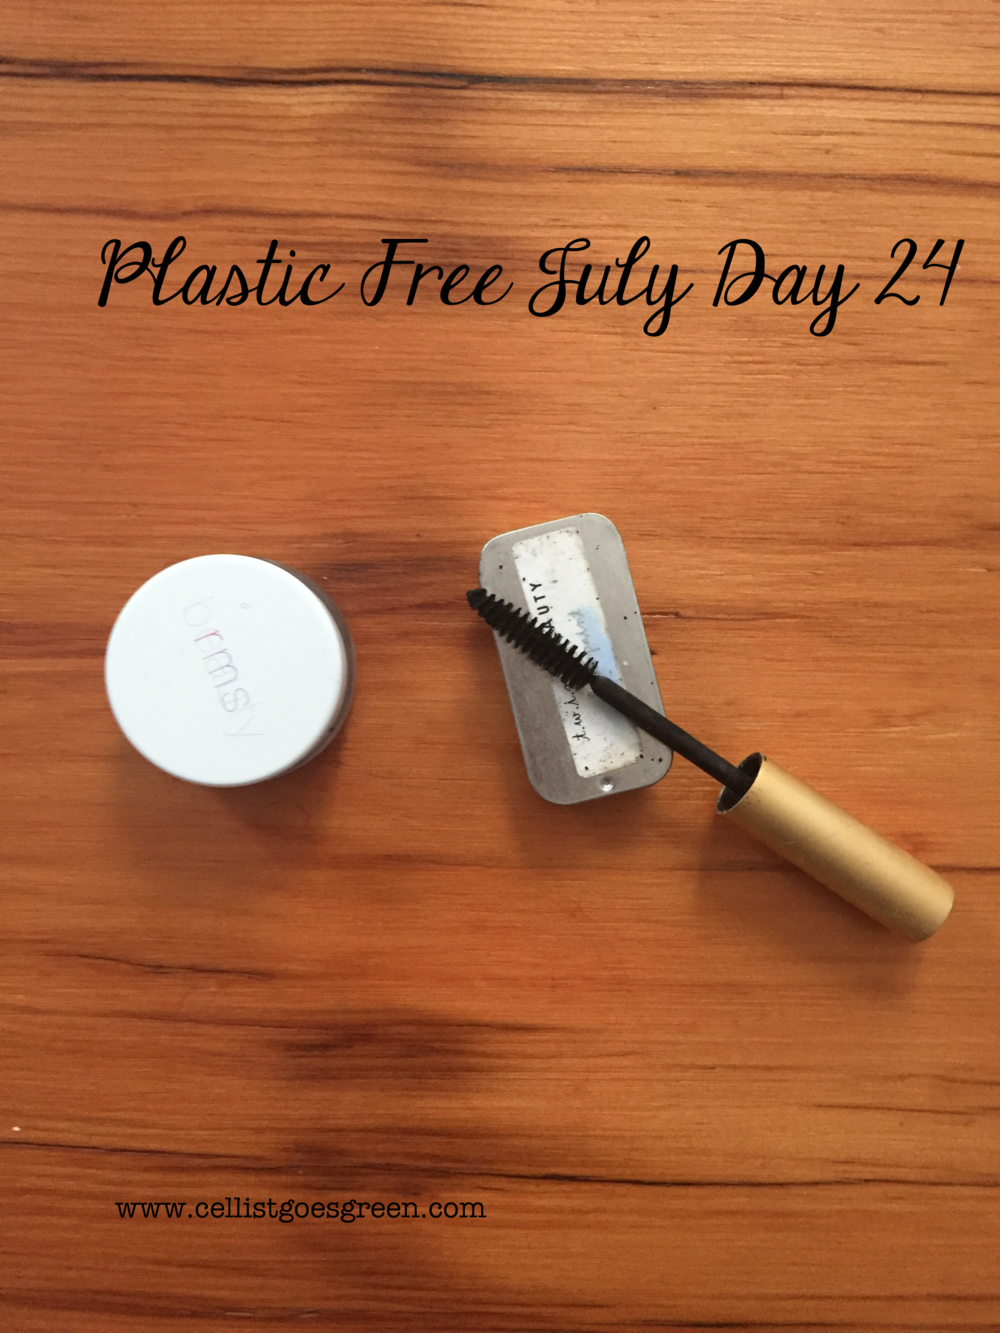 Plastic Free July Day 24: Plastic-free makeup options